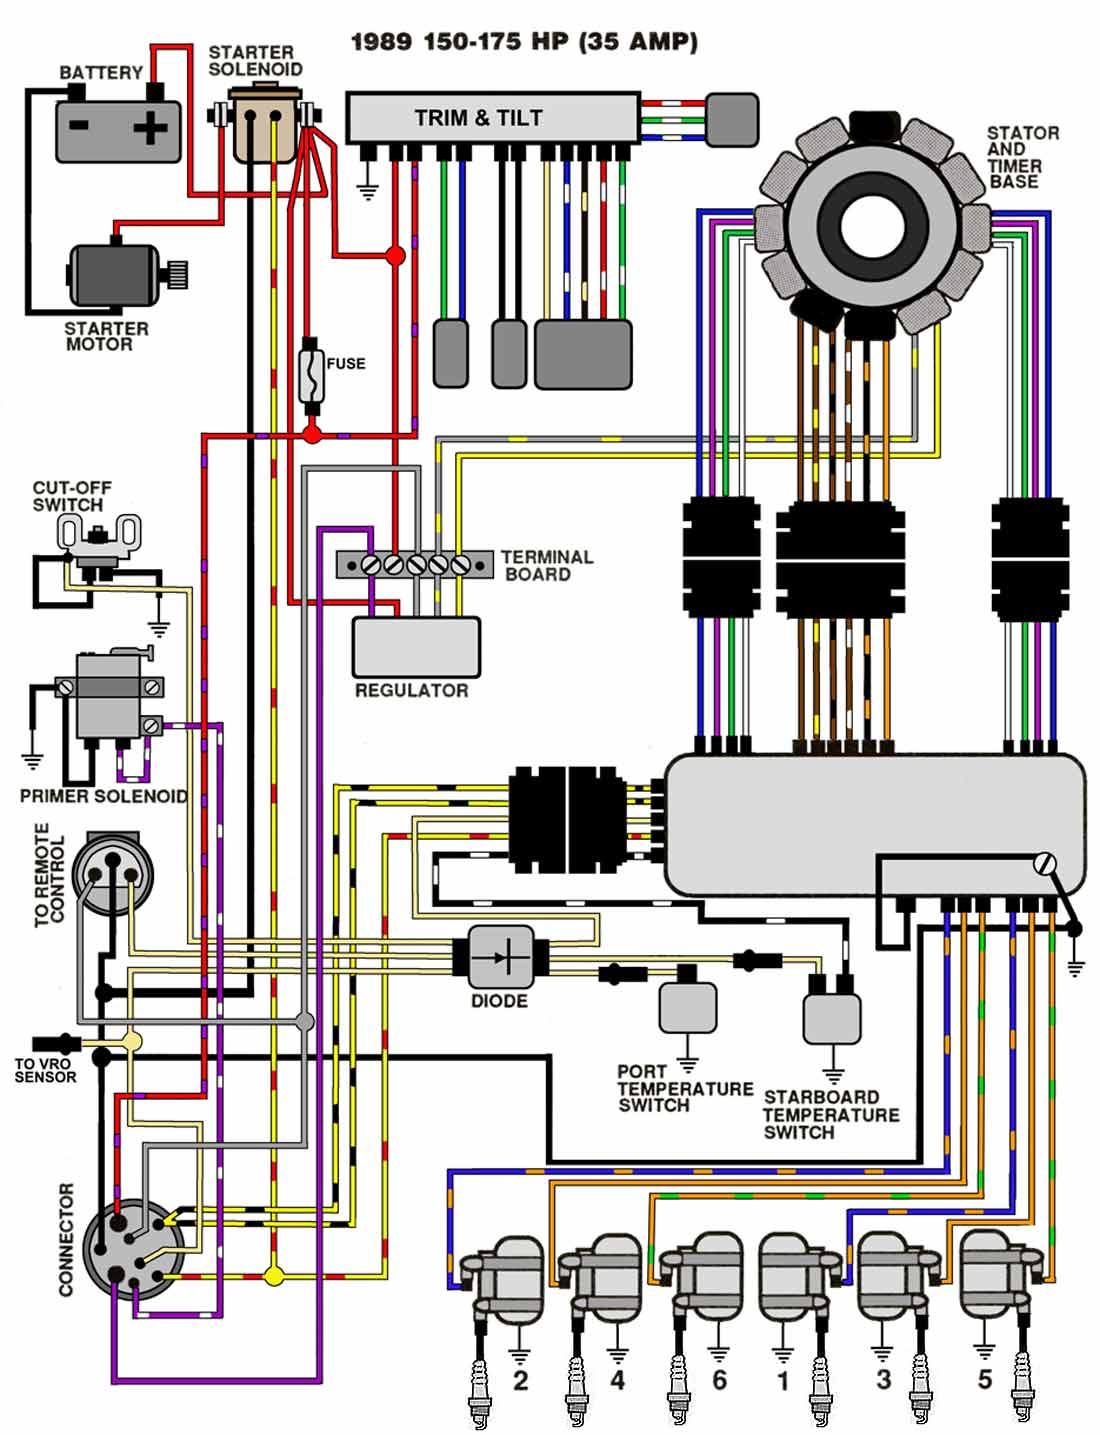 Johnson Ignition Wiring Diagram Solution Of Your Pollak Switch Evinrude Outboard Diagrams Mastertech Marine Rh Maxrules Com Boat Motor